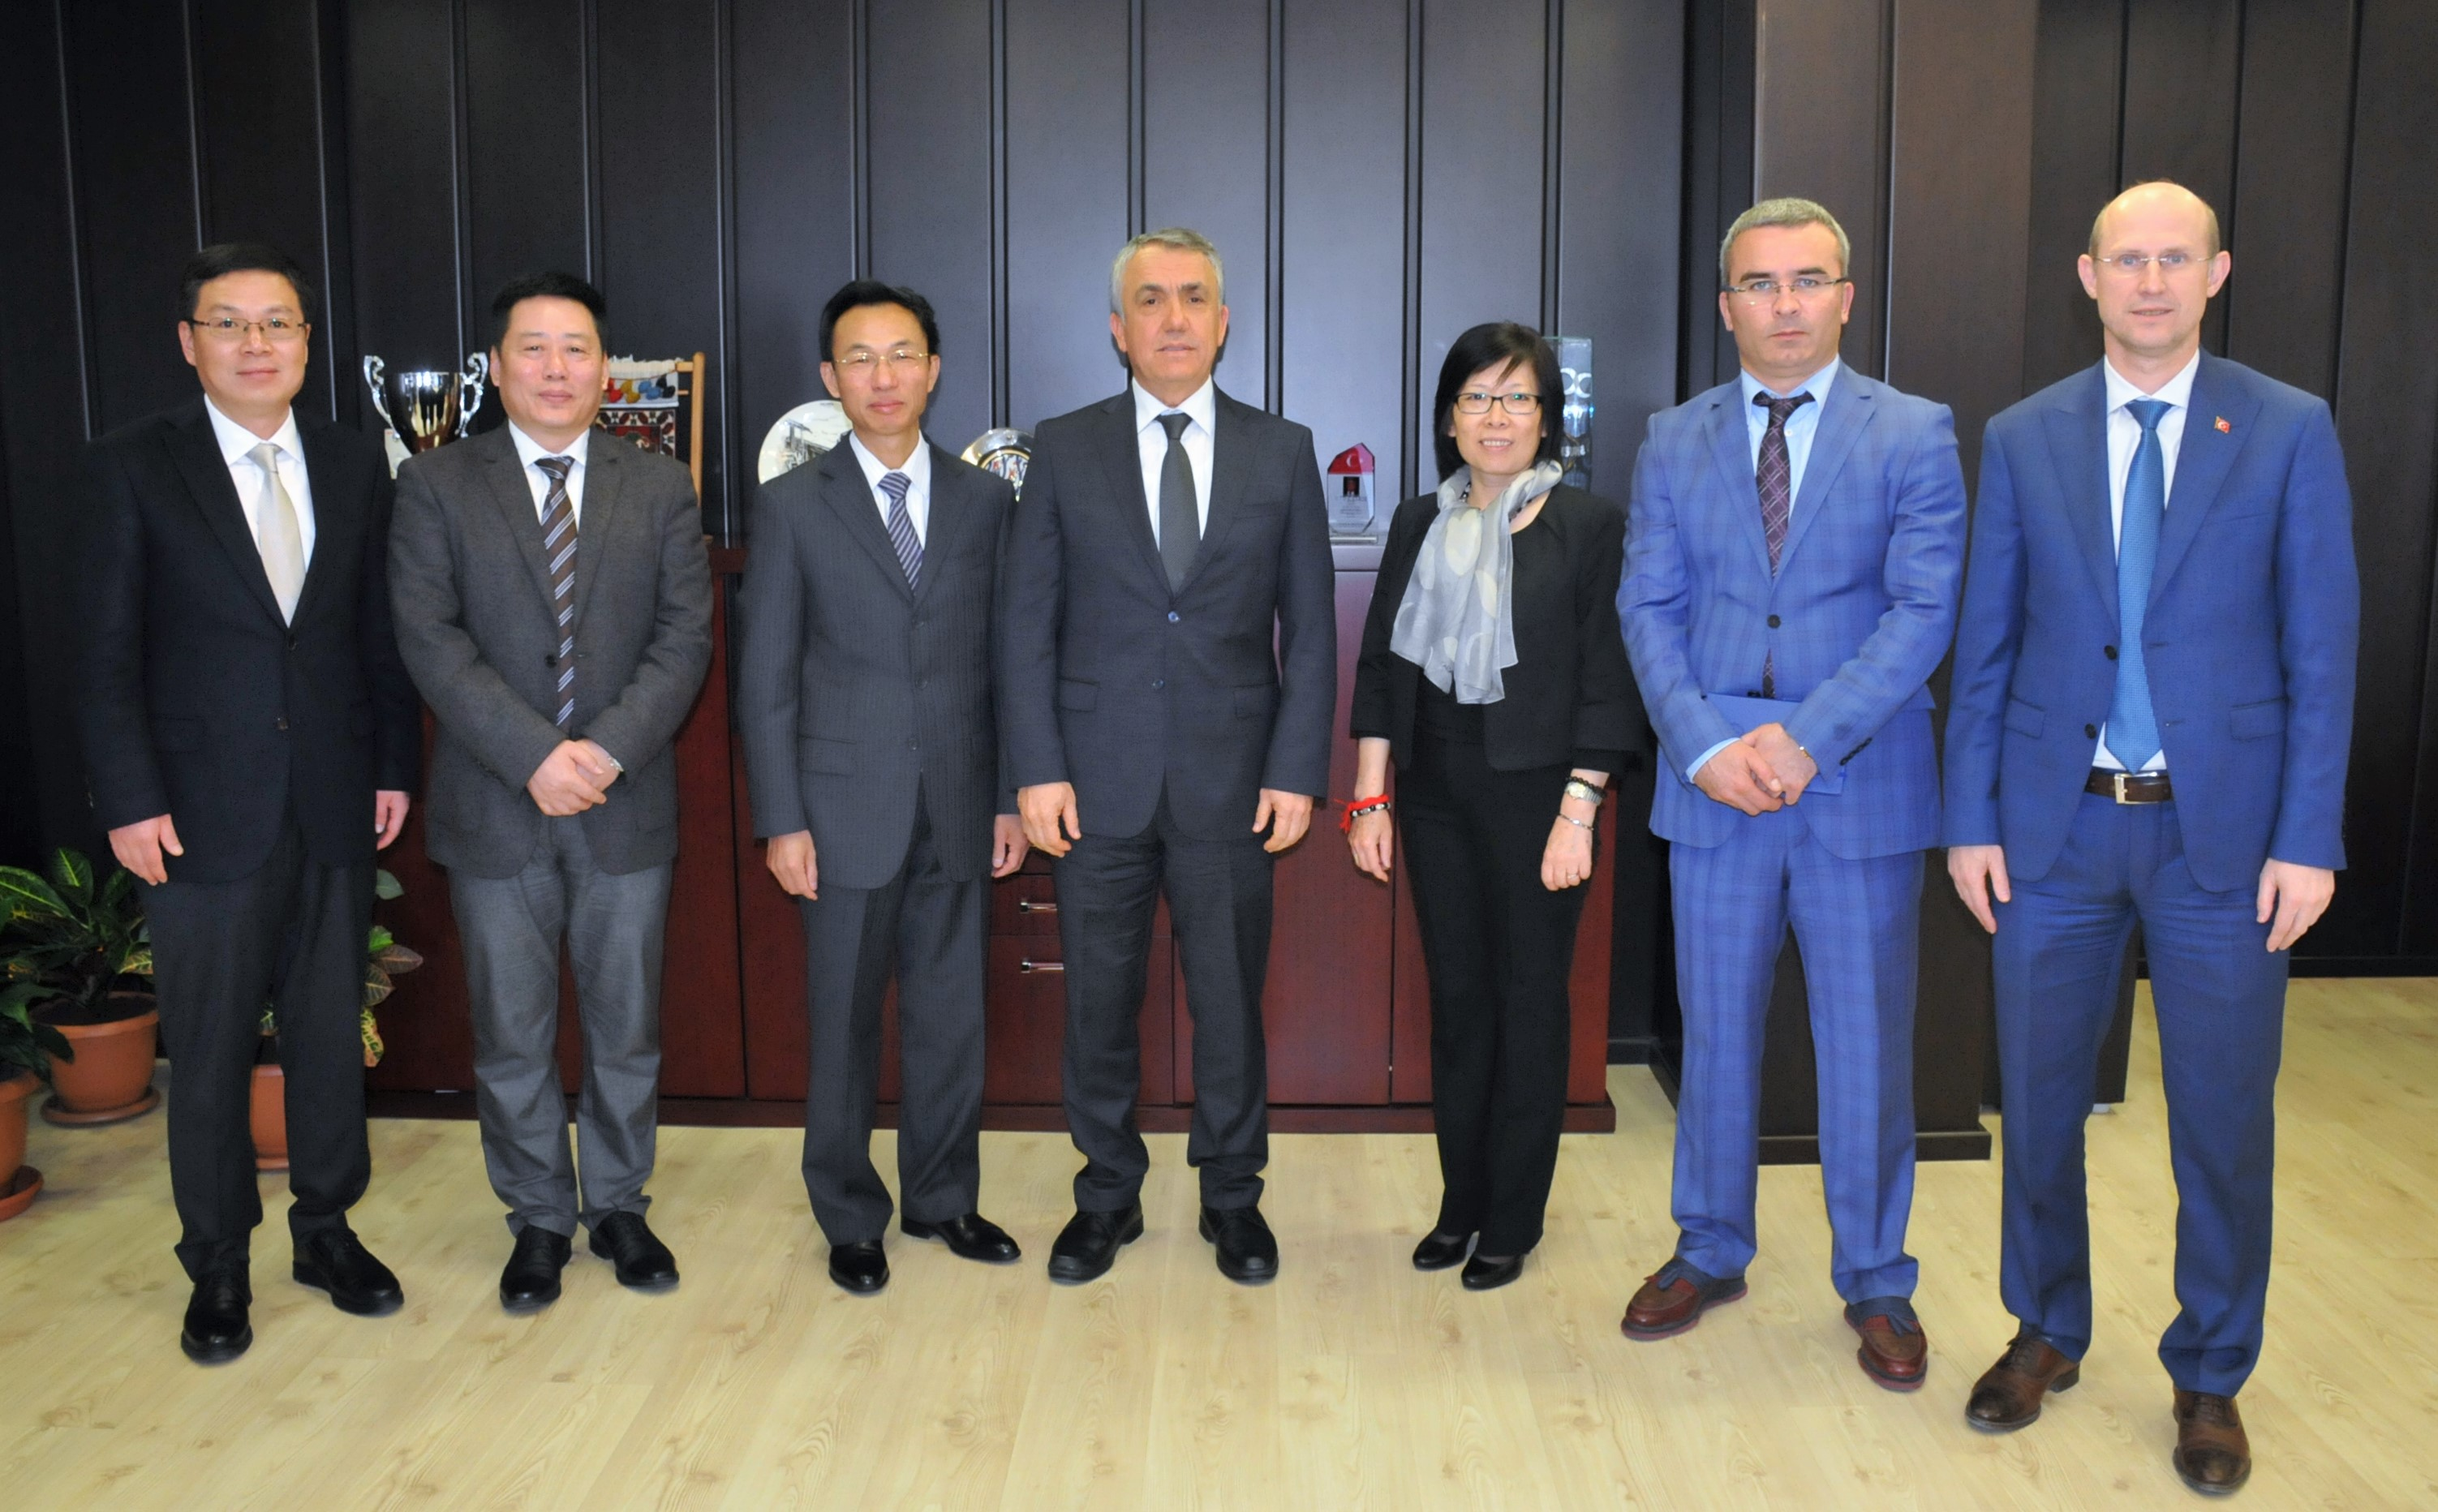 http://www.omu.edu.tr/sites/default/files/files/ambassador_of_the_peoples_republic_of_china_visits_rector_bilgic/dsc_0038.jpg